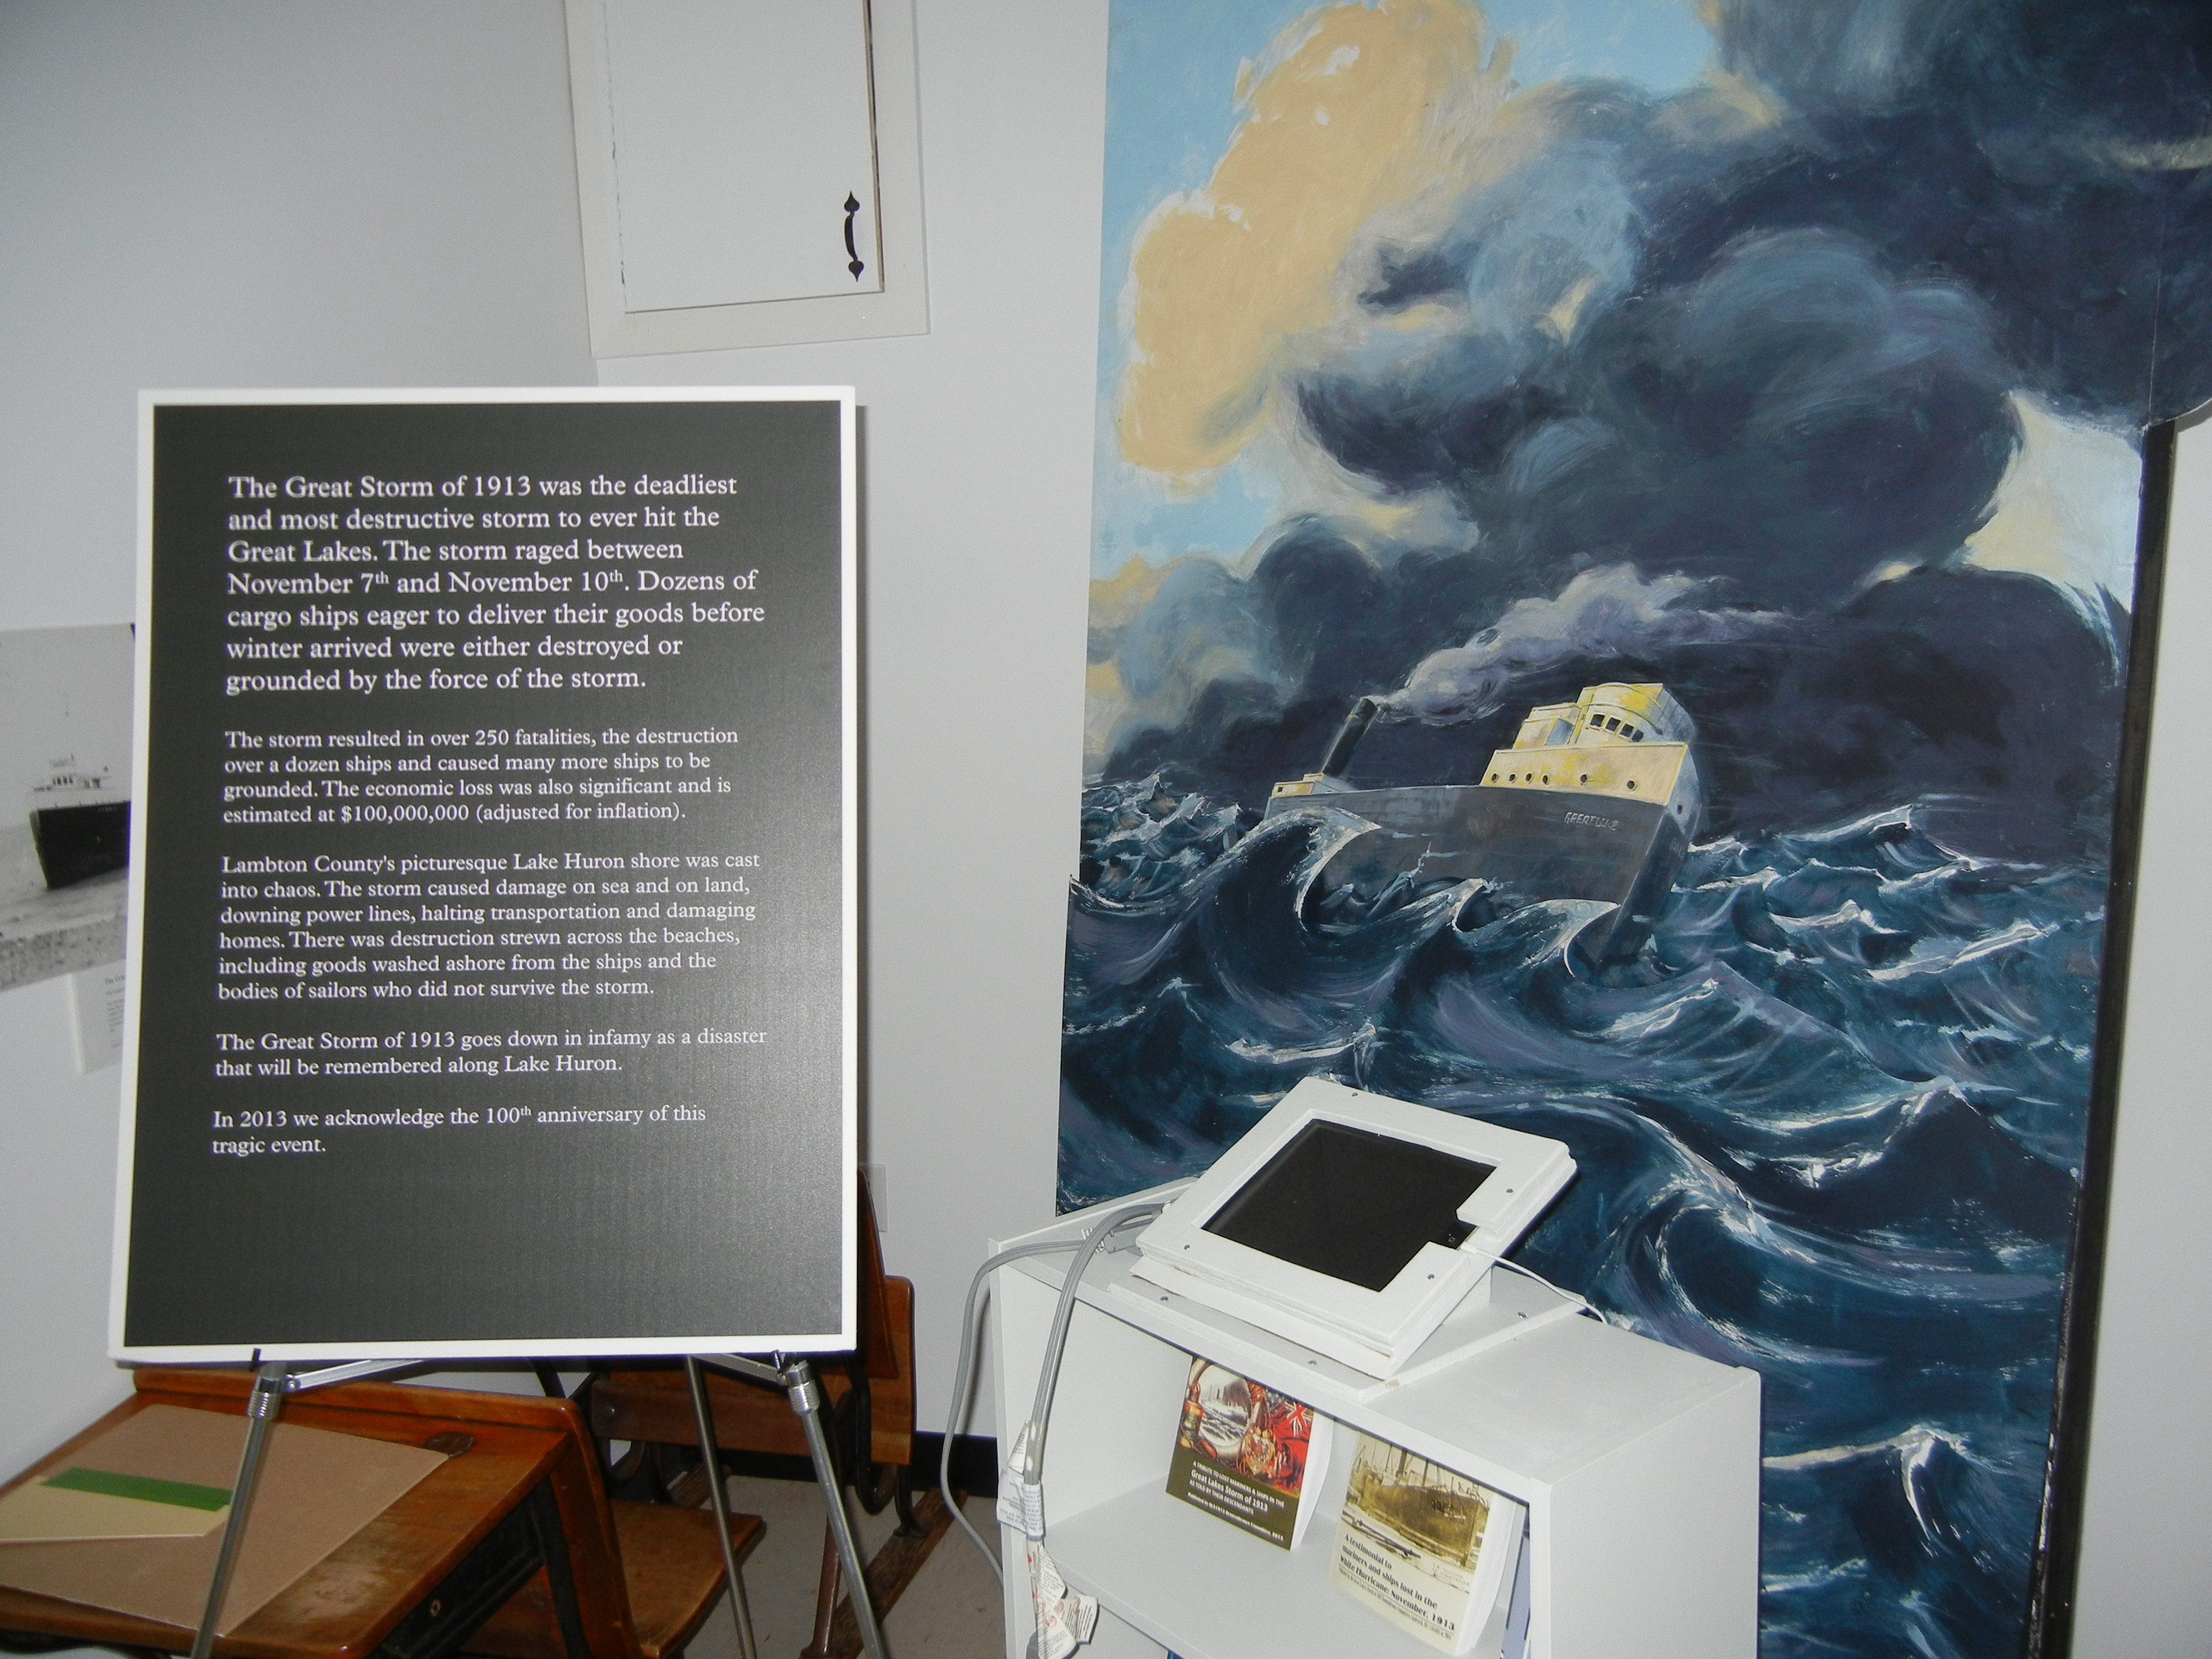 Museum exhibit of the Great Storm of 1913